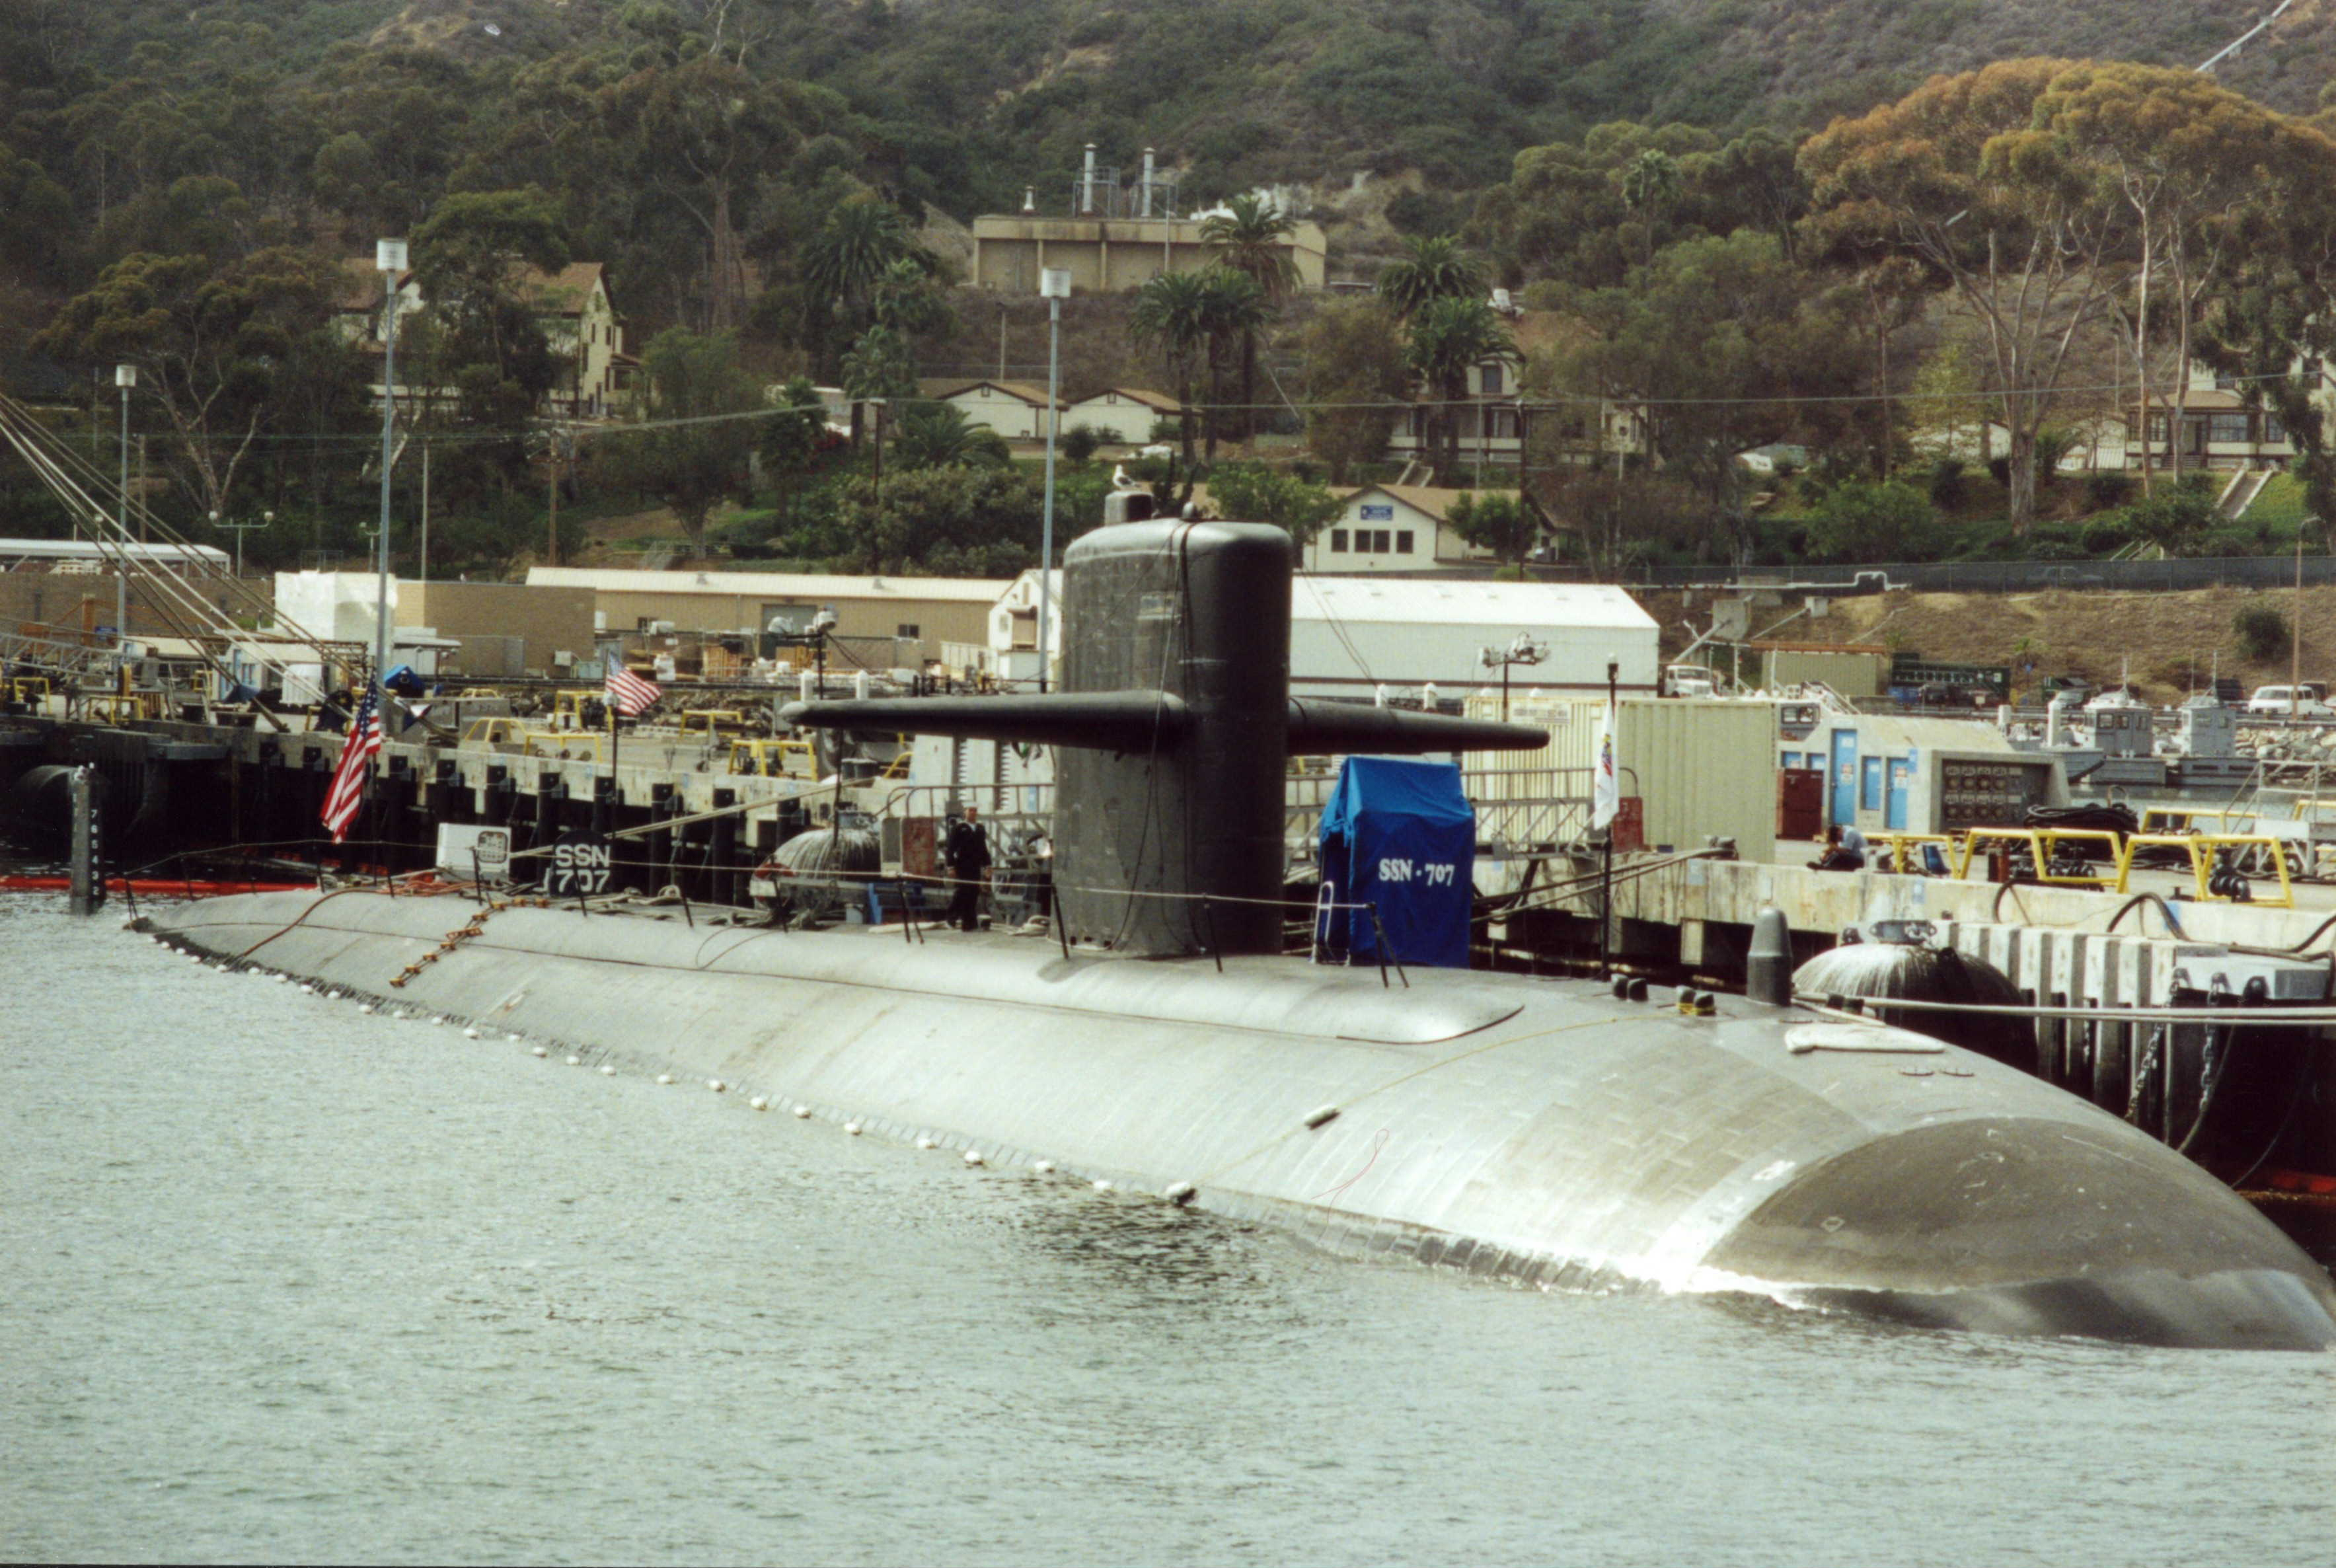 SSN 707 Portsmouth